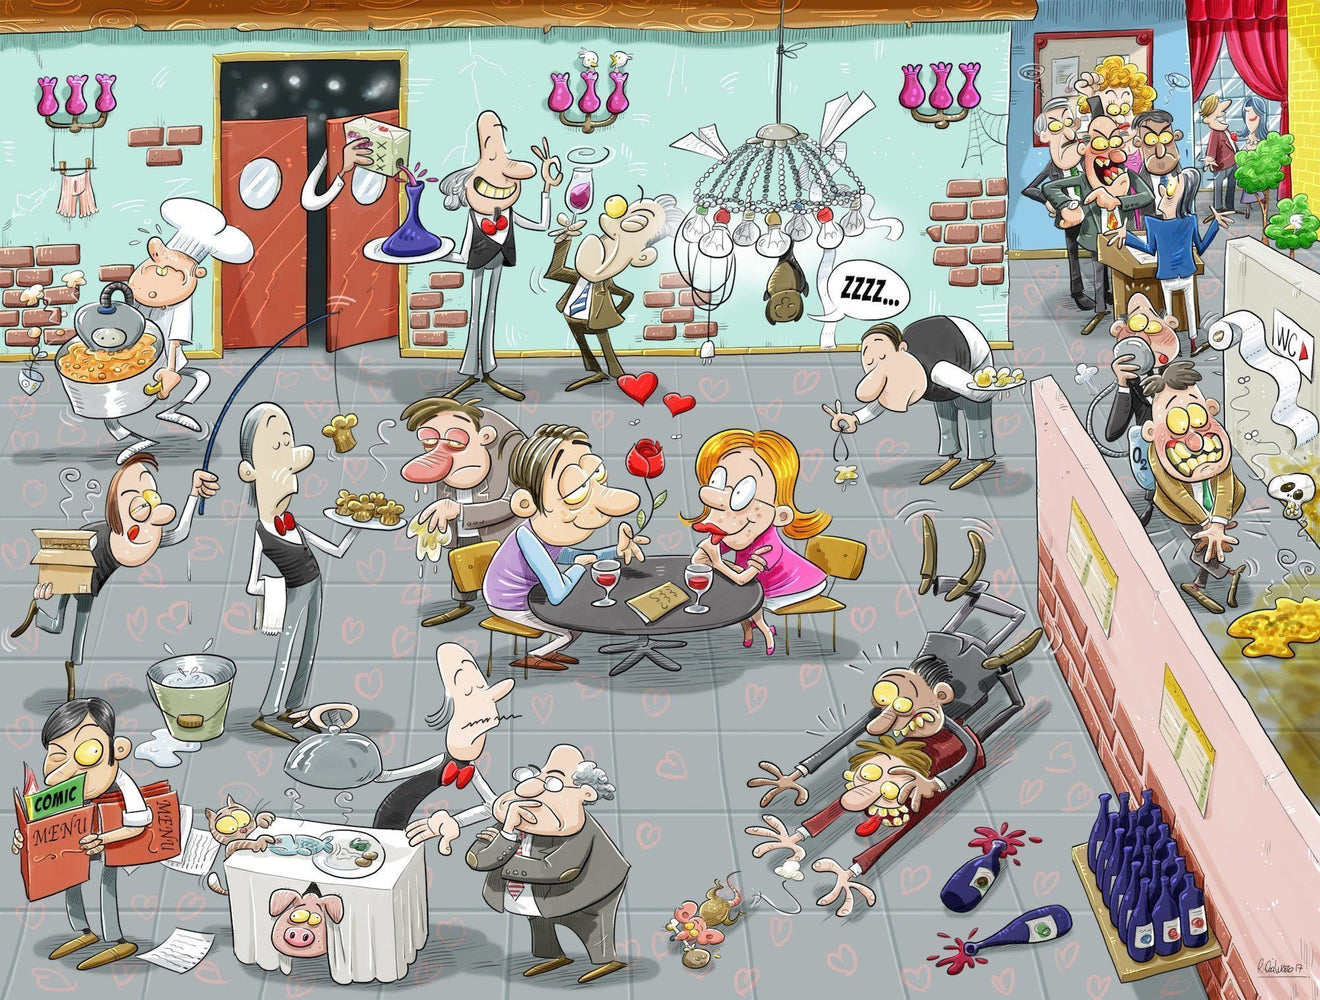 Chaos on Valentine's Day 1000 or 500 Piece Jigsaw Puzzle- Chaos no.4 - All Jigsaw Puzzles